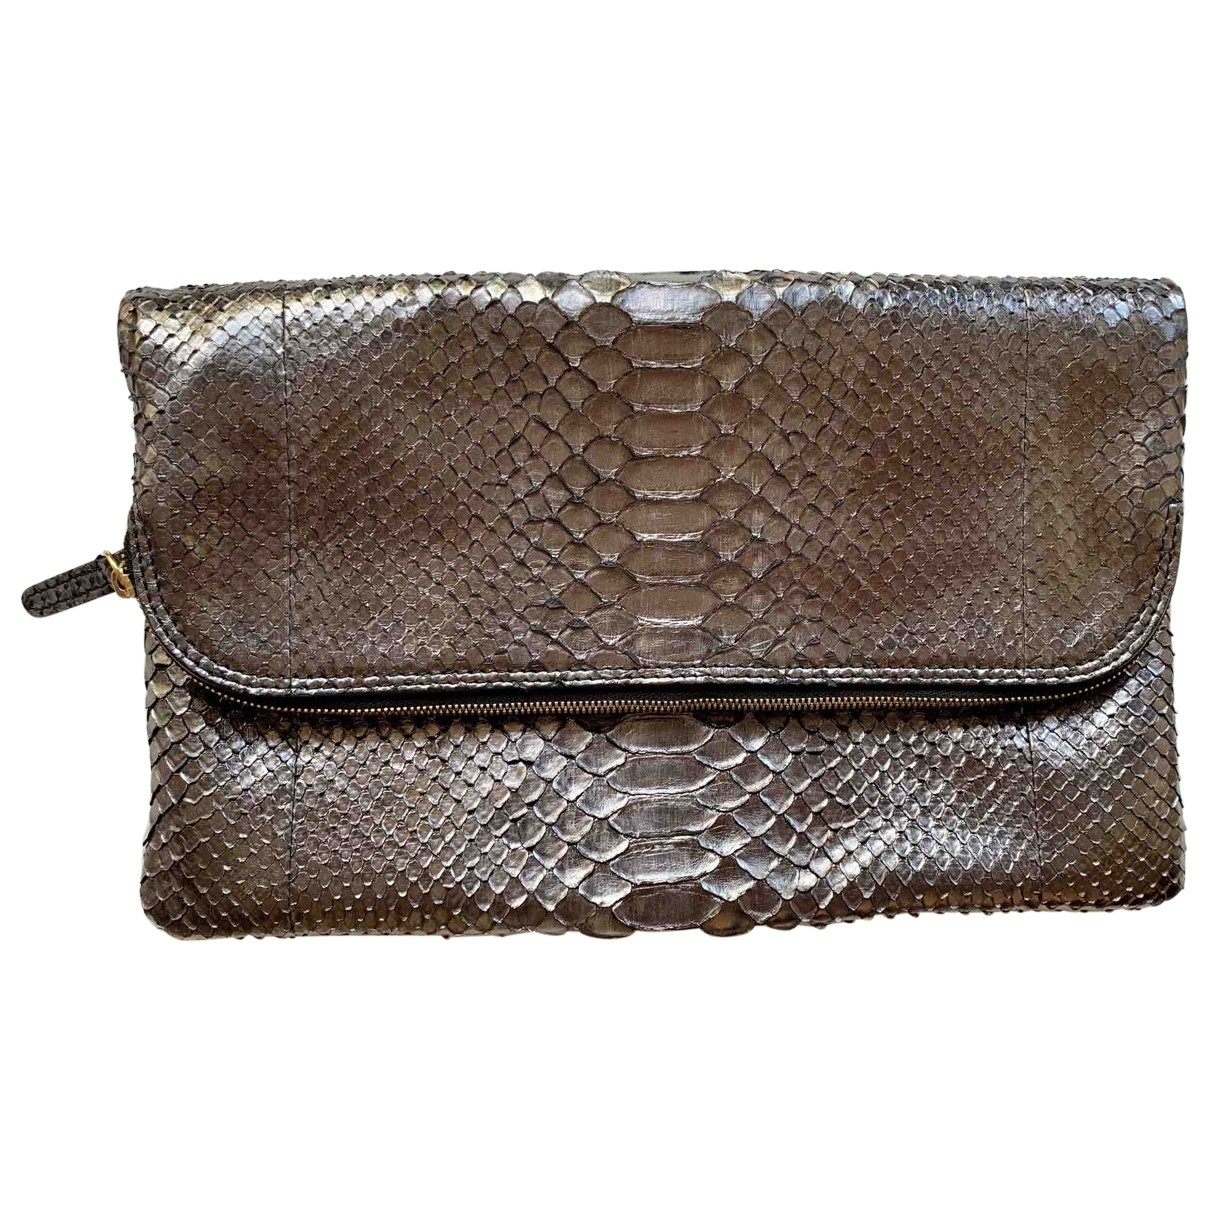 Non Signé / Unsigned \N Silver Python Clutch bag for Women \N